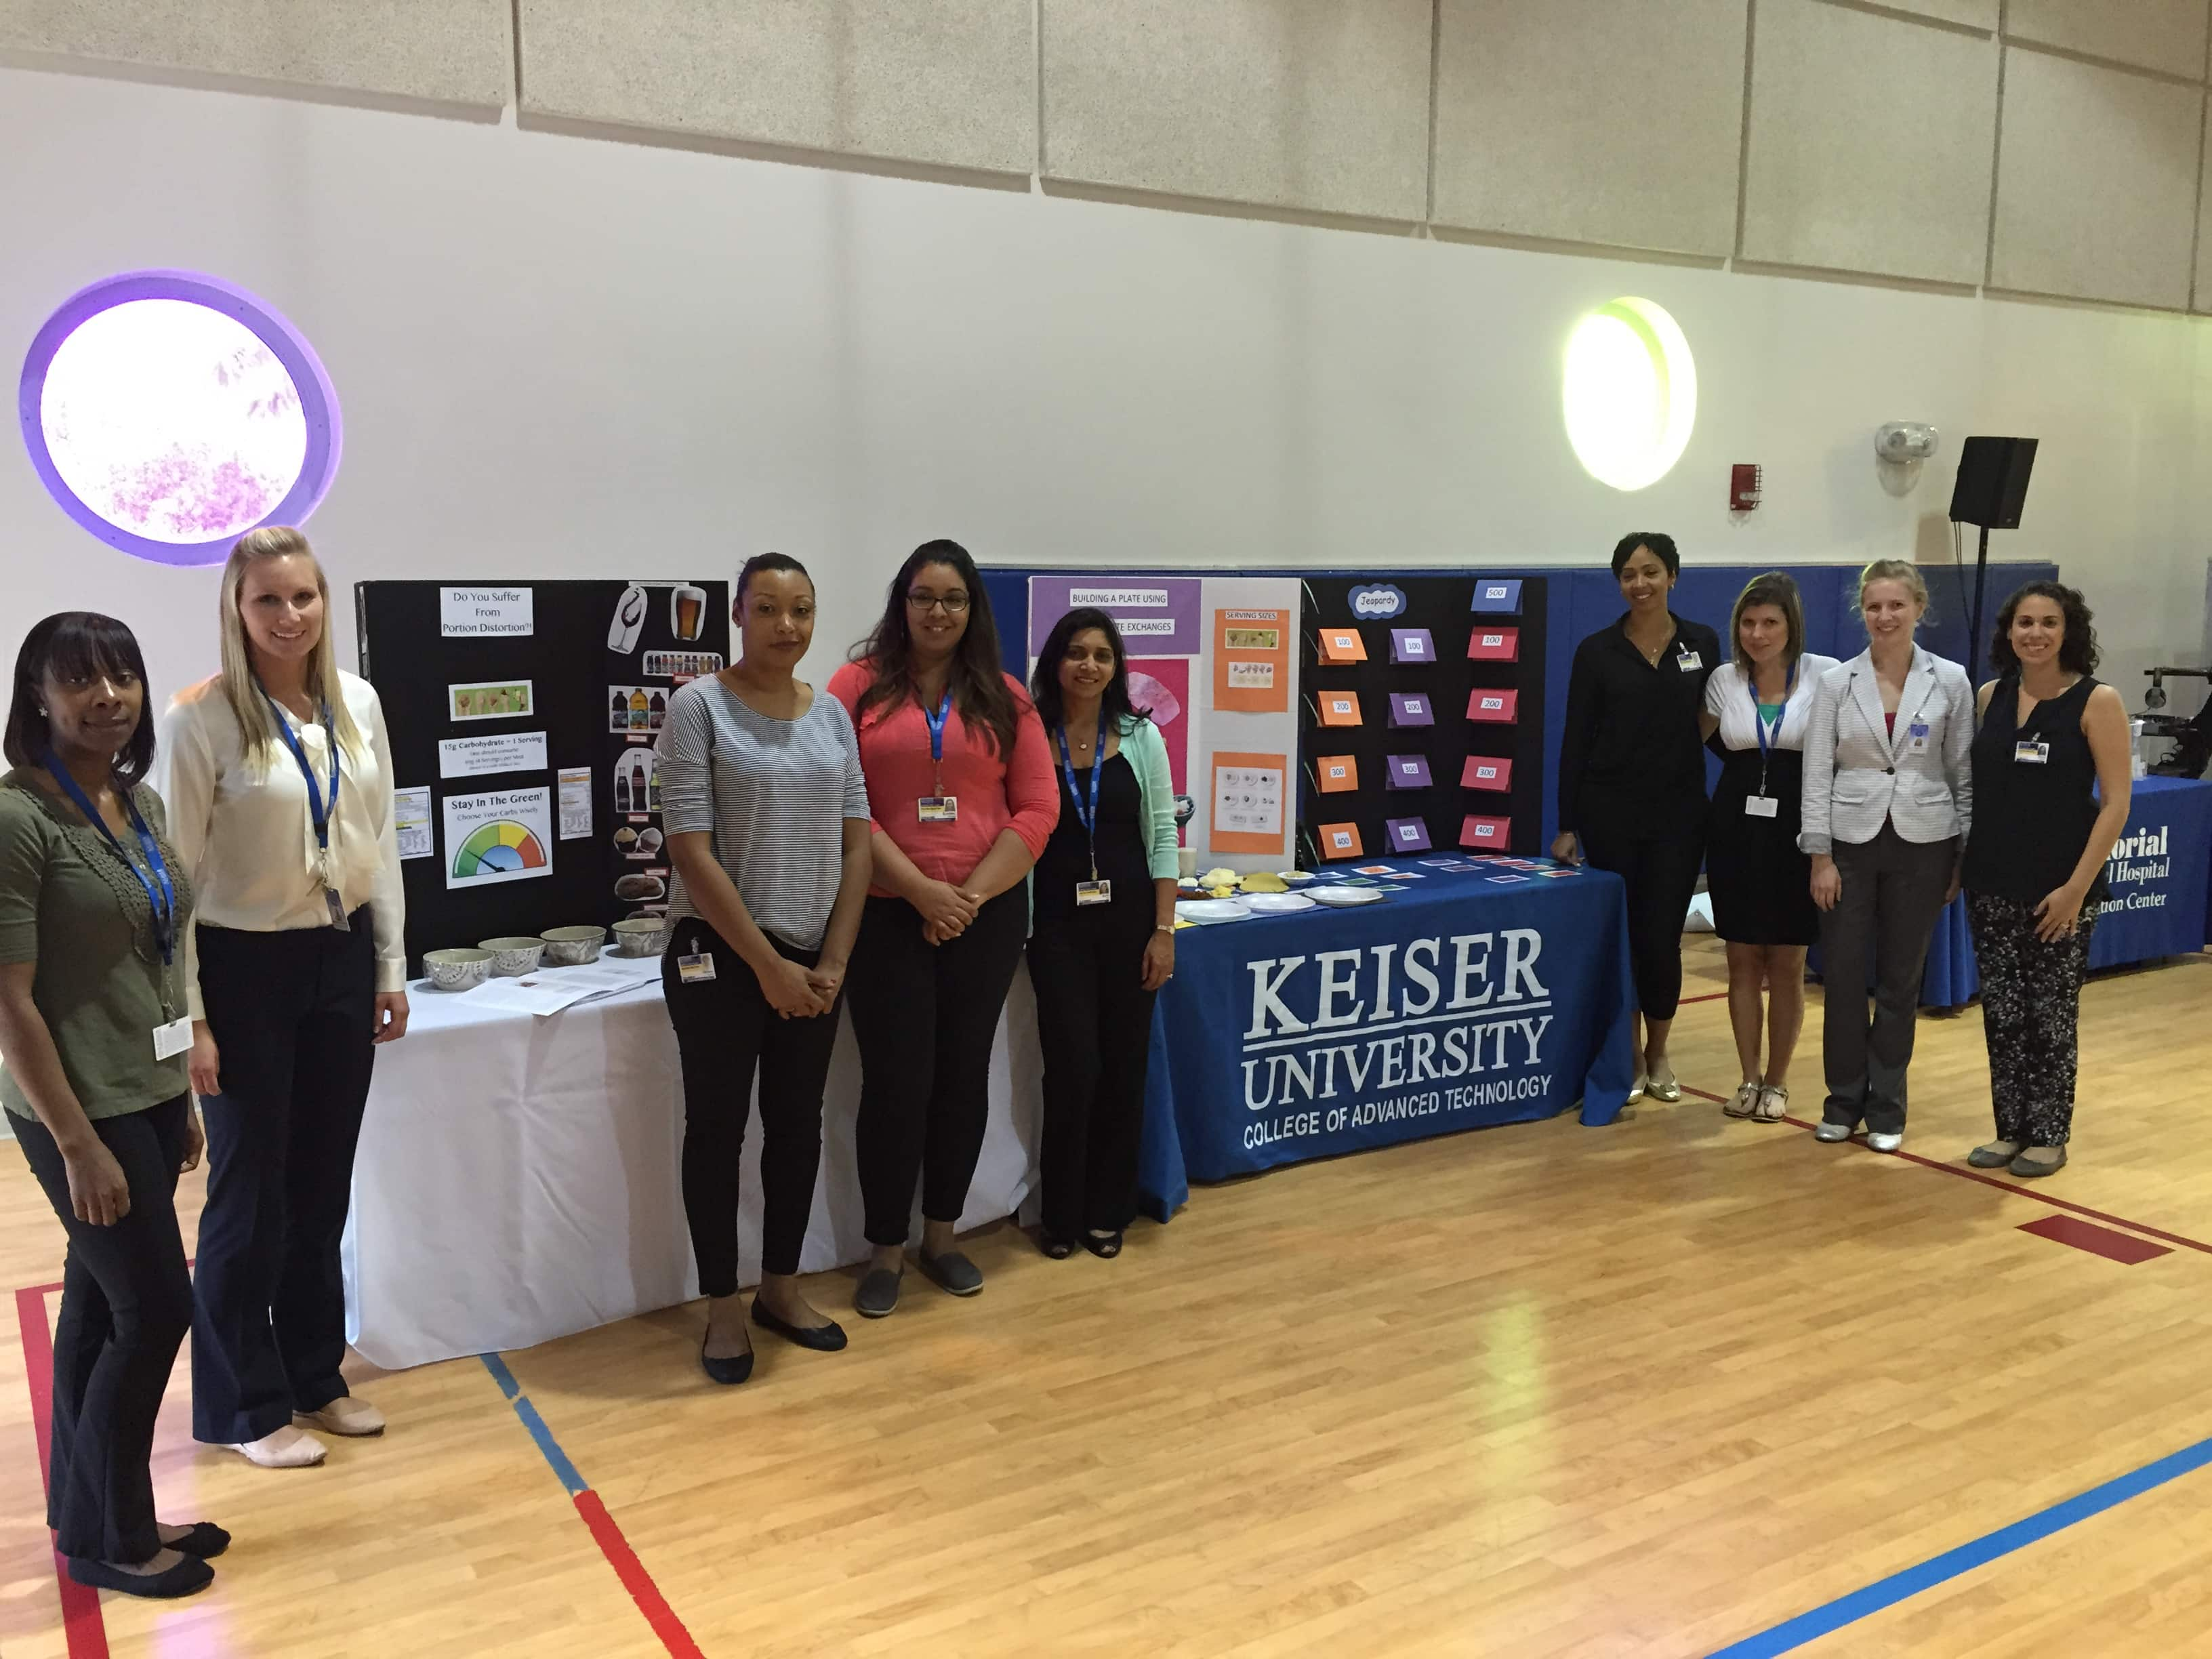 Dietetics & Nutrition Students from the Pembroke Pines Campus Participate in 3rd Annual Diabetes Awareness Event